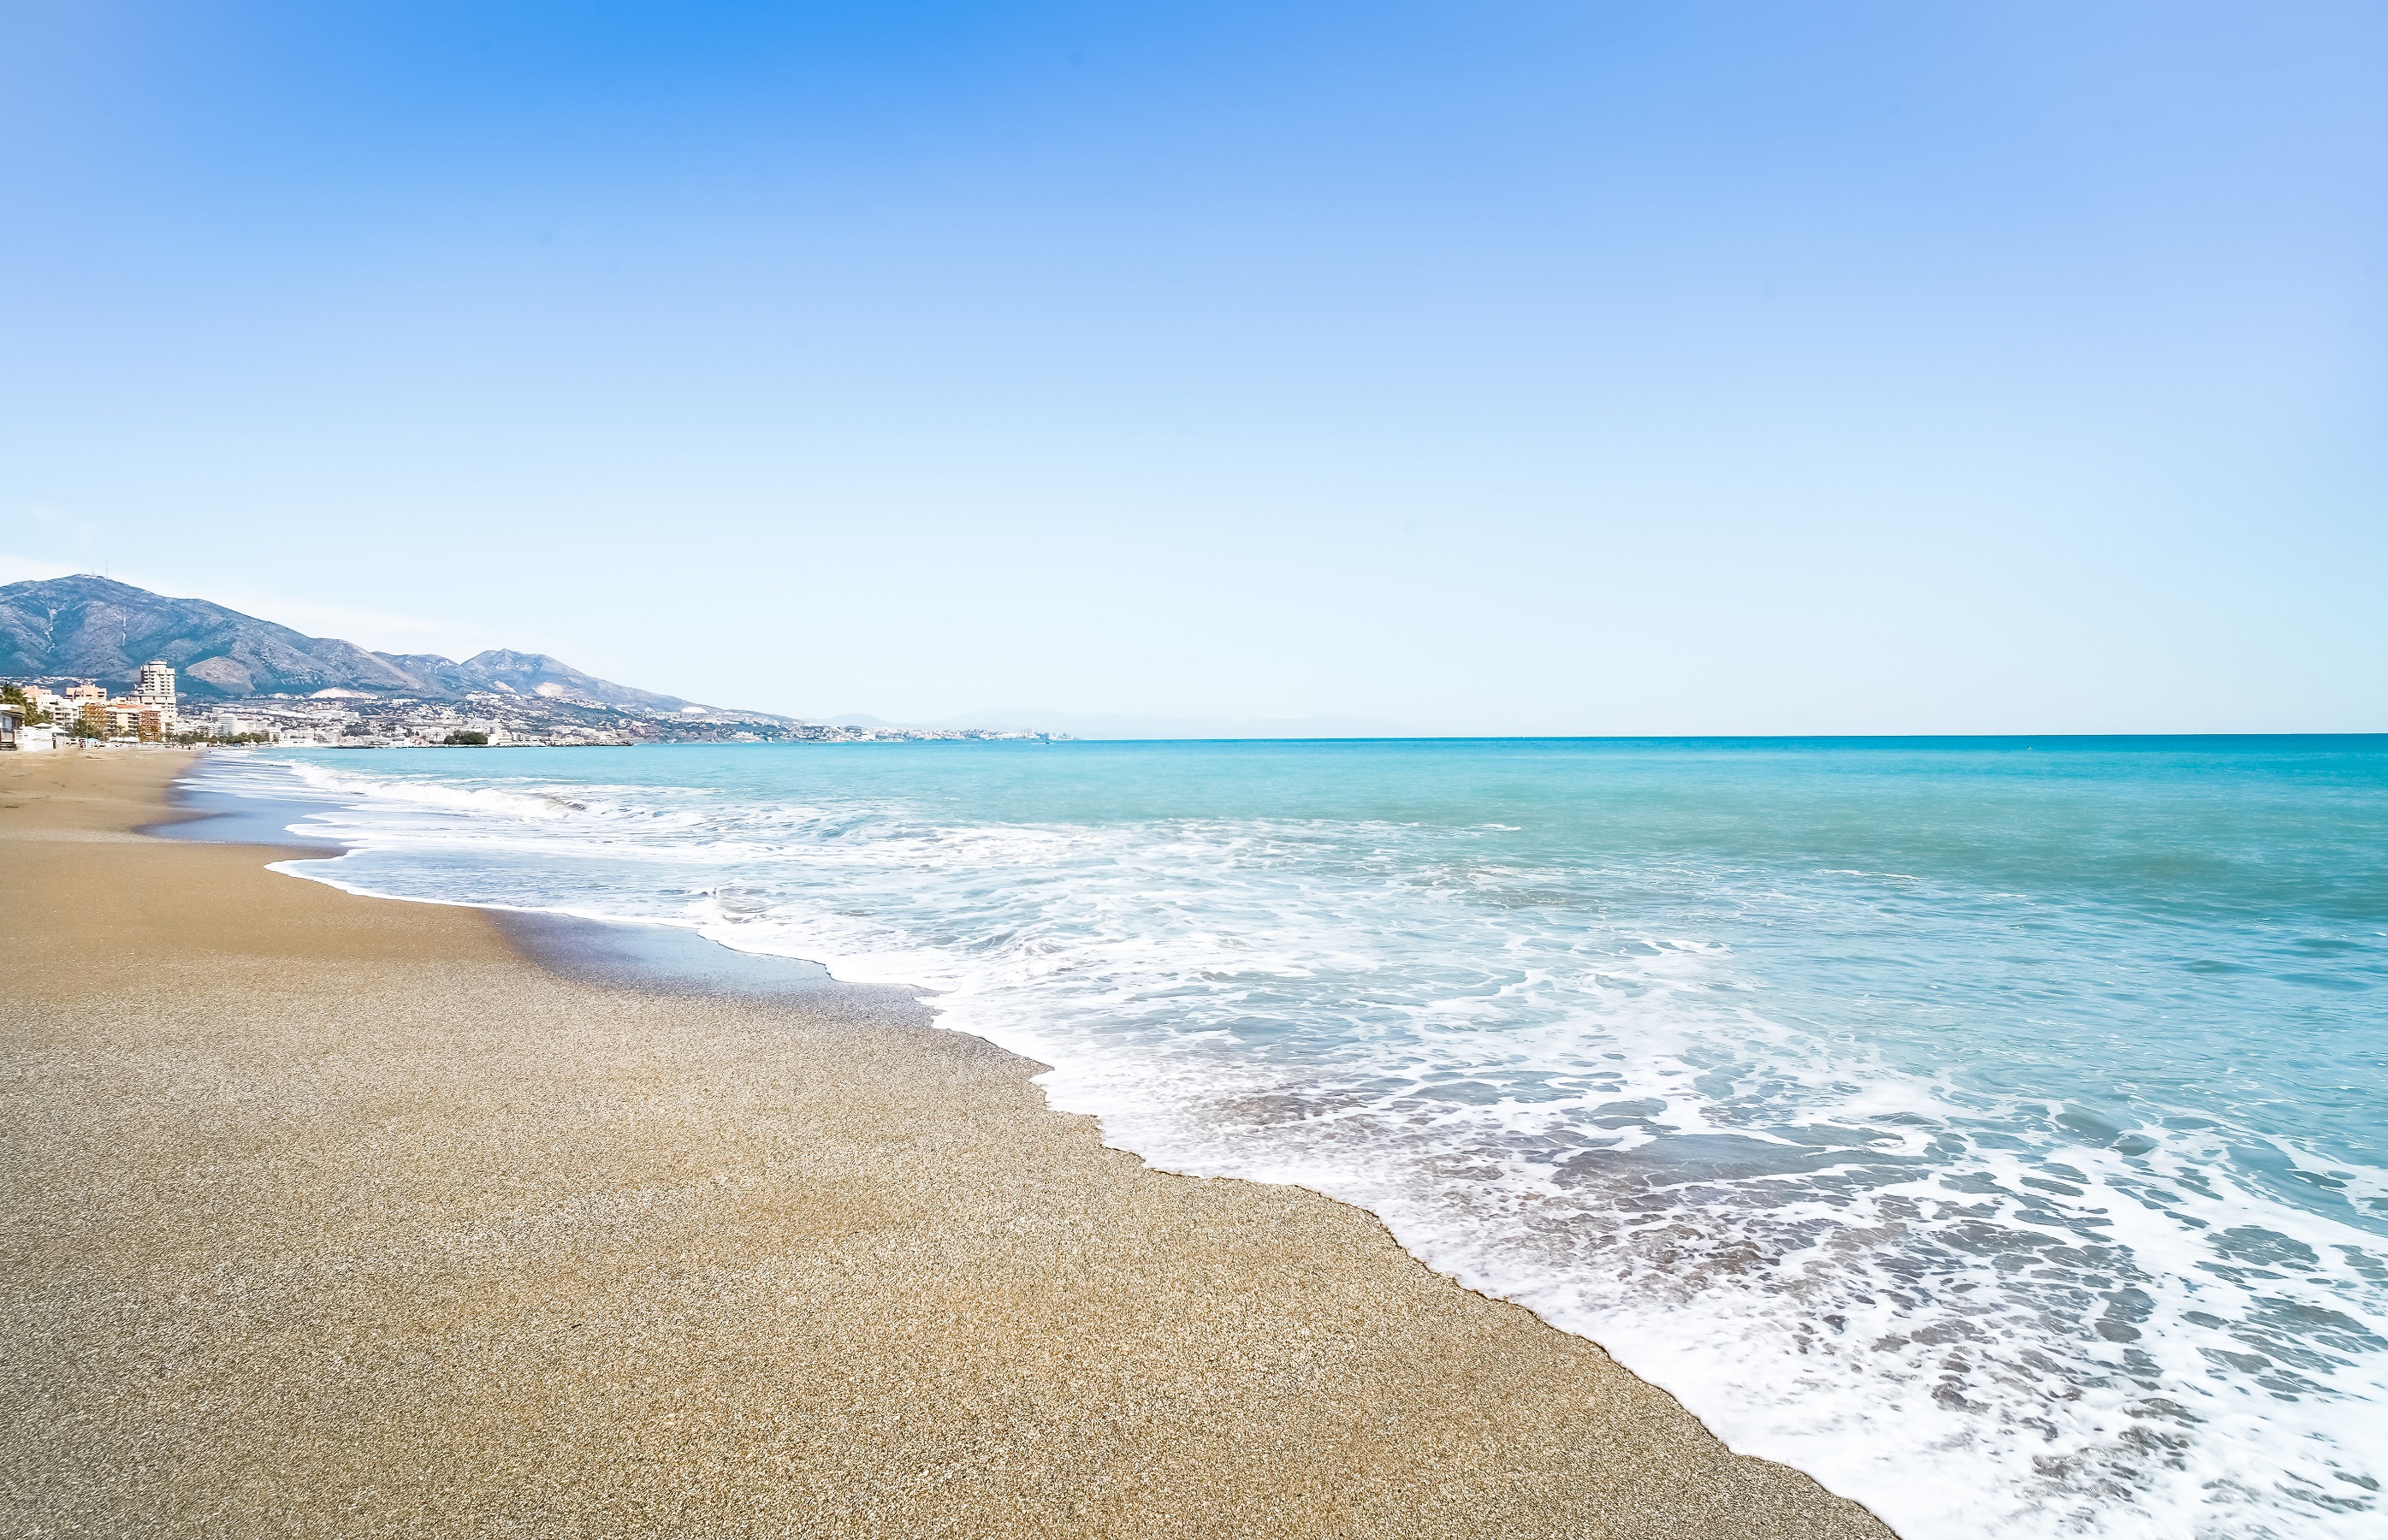 Costa del Sol region is a great variety of fashionable resort towns that amaze visitors with their nature: the beauty of the mountains, the blue waters, and variegated greenery.